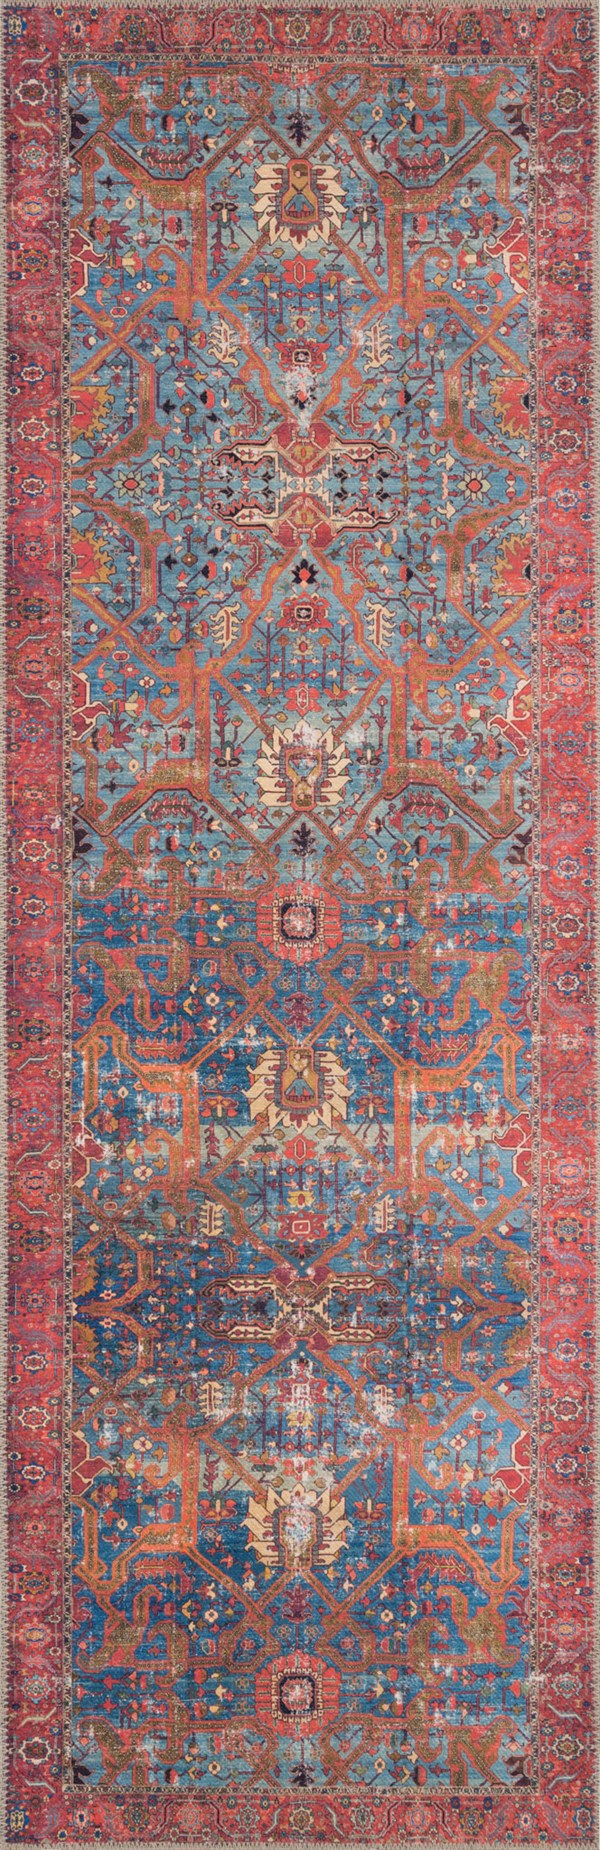 Blue, Red Vintage / Overdyed Area Rug